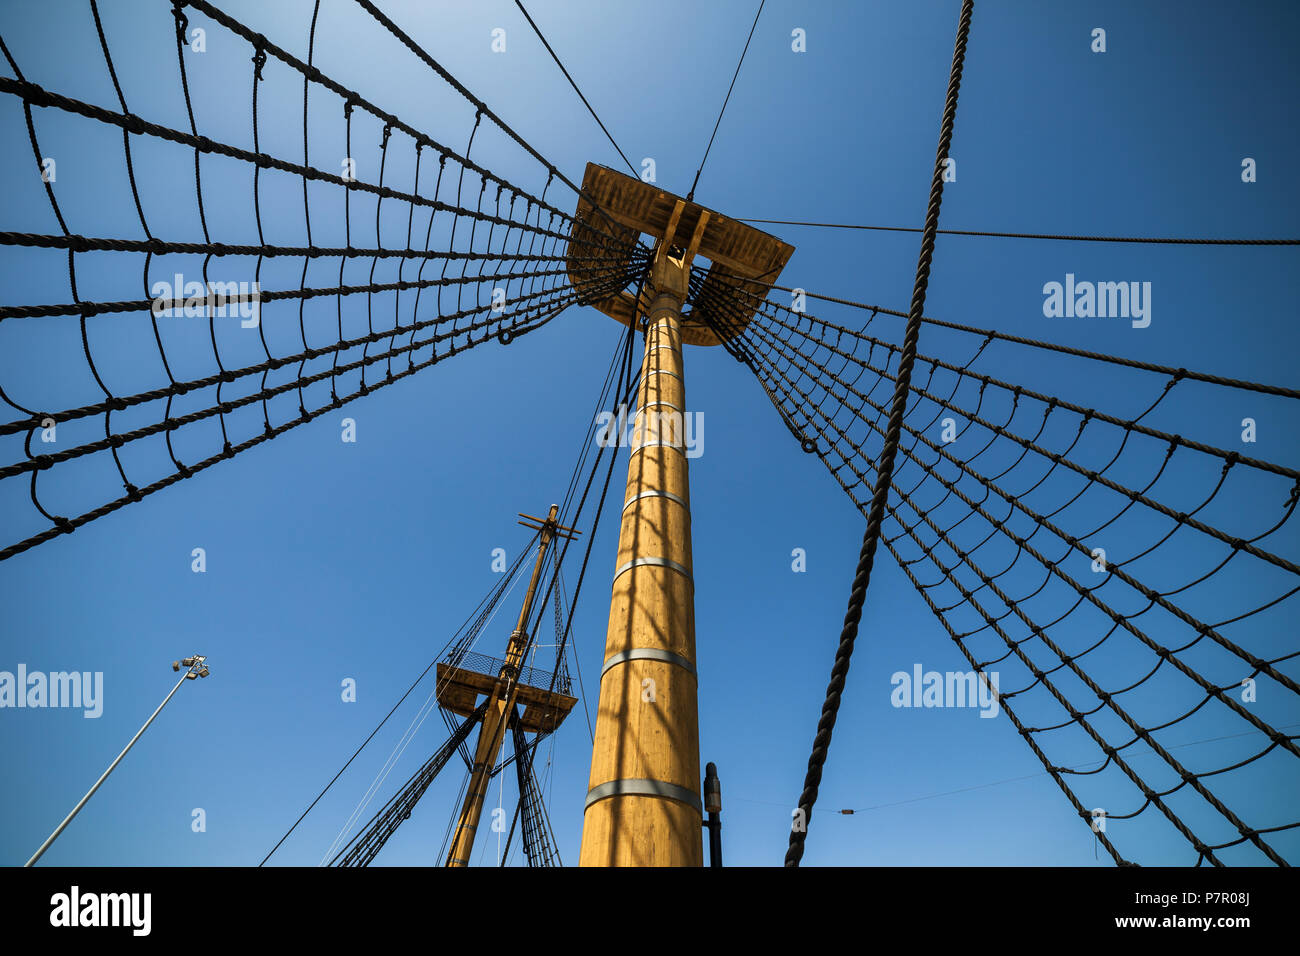 Rigging Shrouds Stock Photos & Rigging Shrouds Stock Images - Alamy